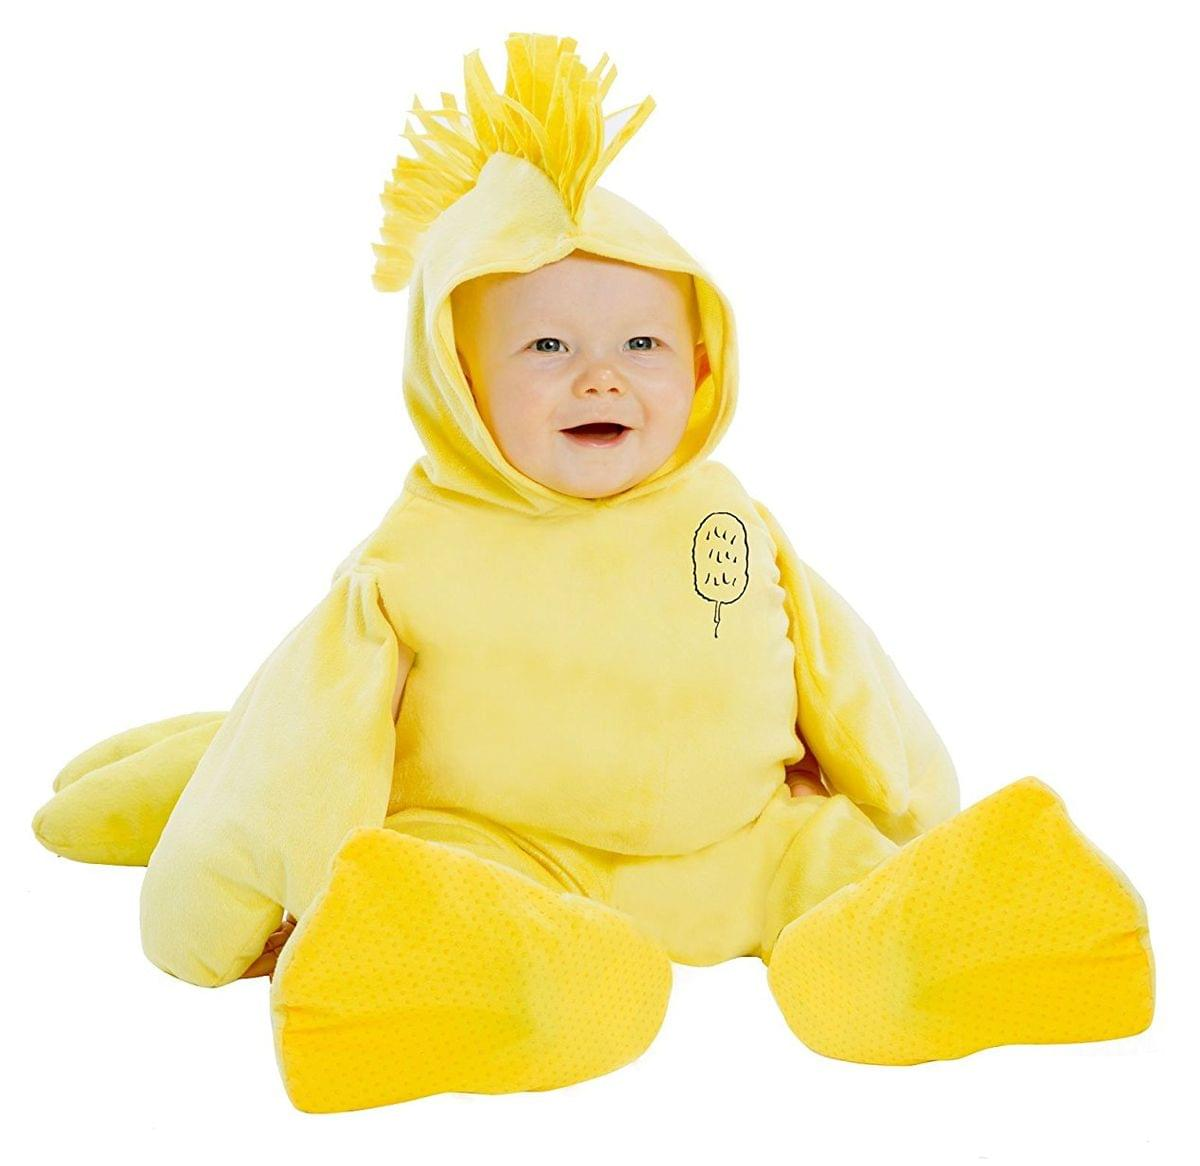 Peanuts Woodstock Infant Costume